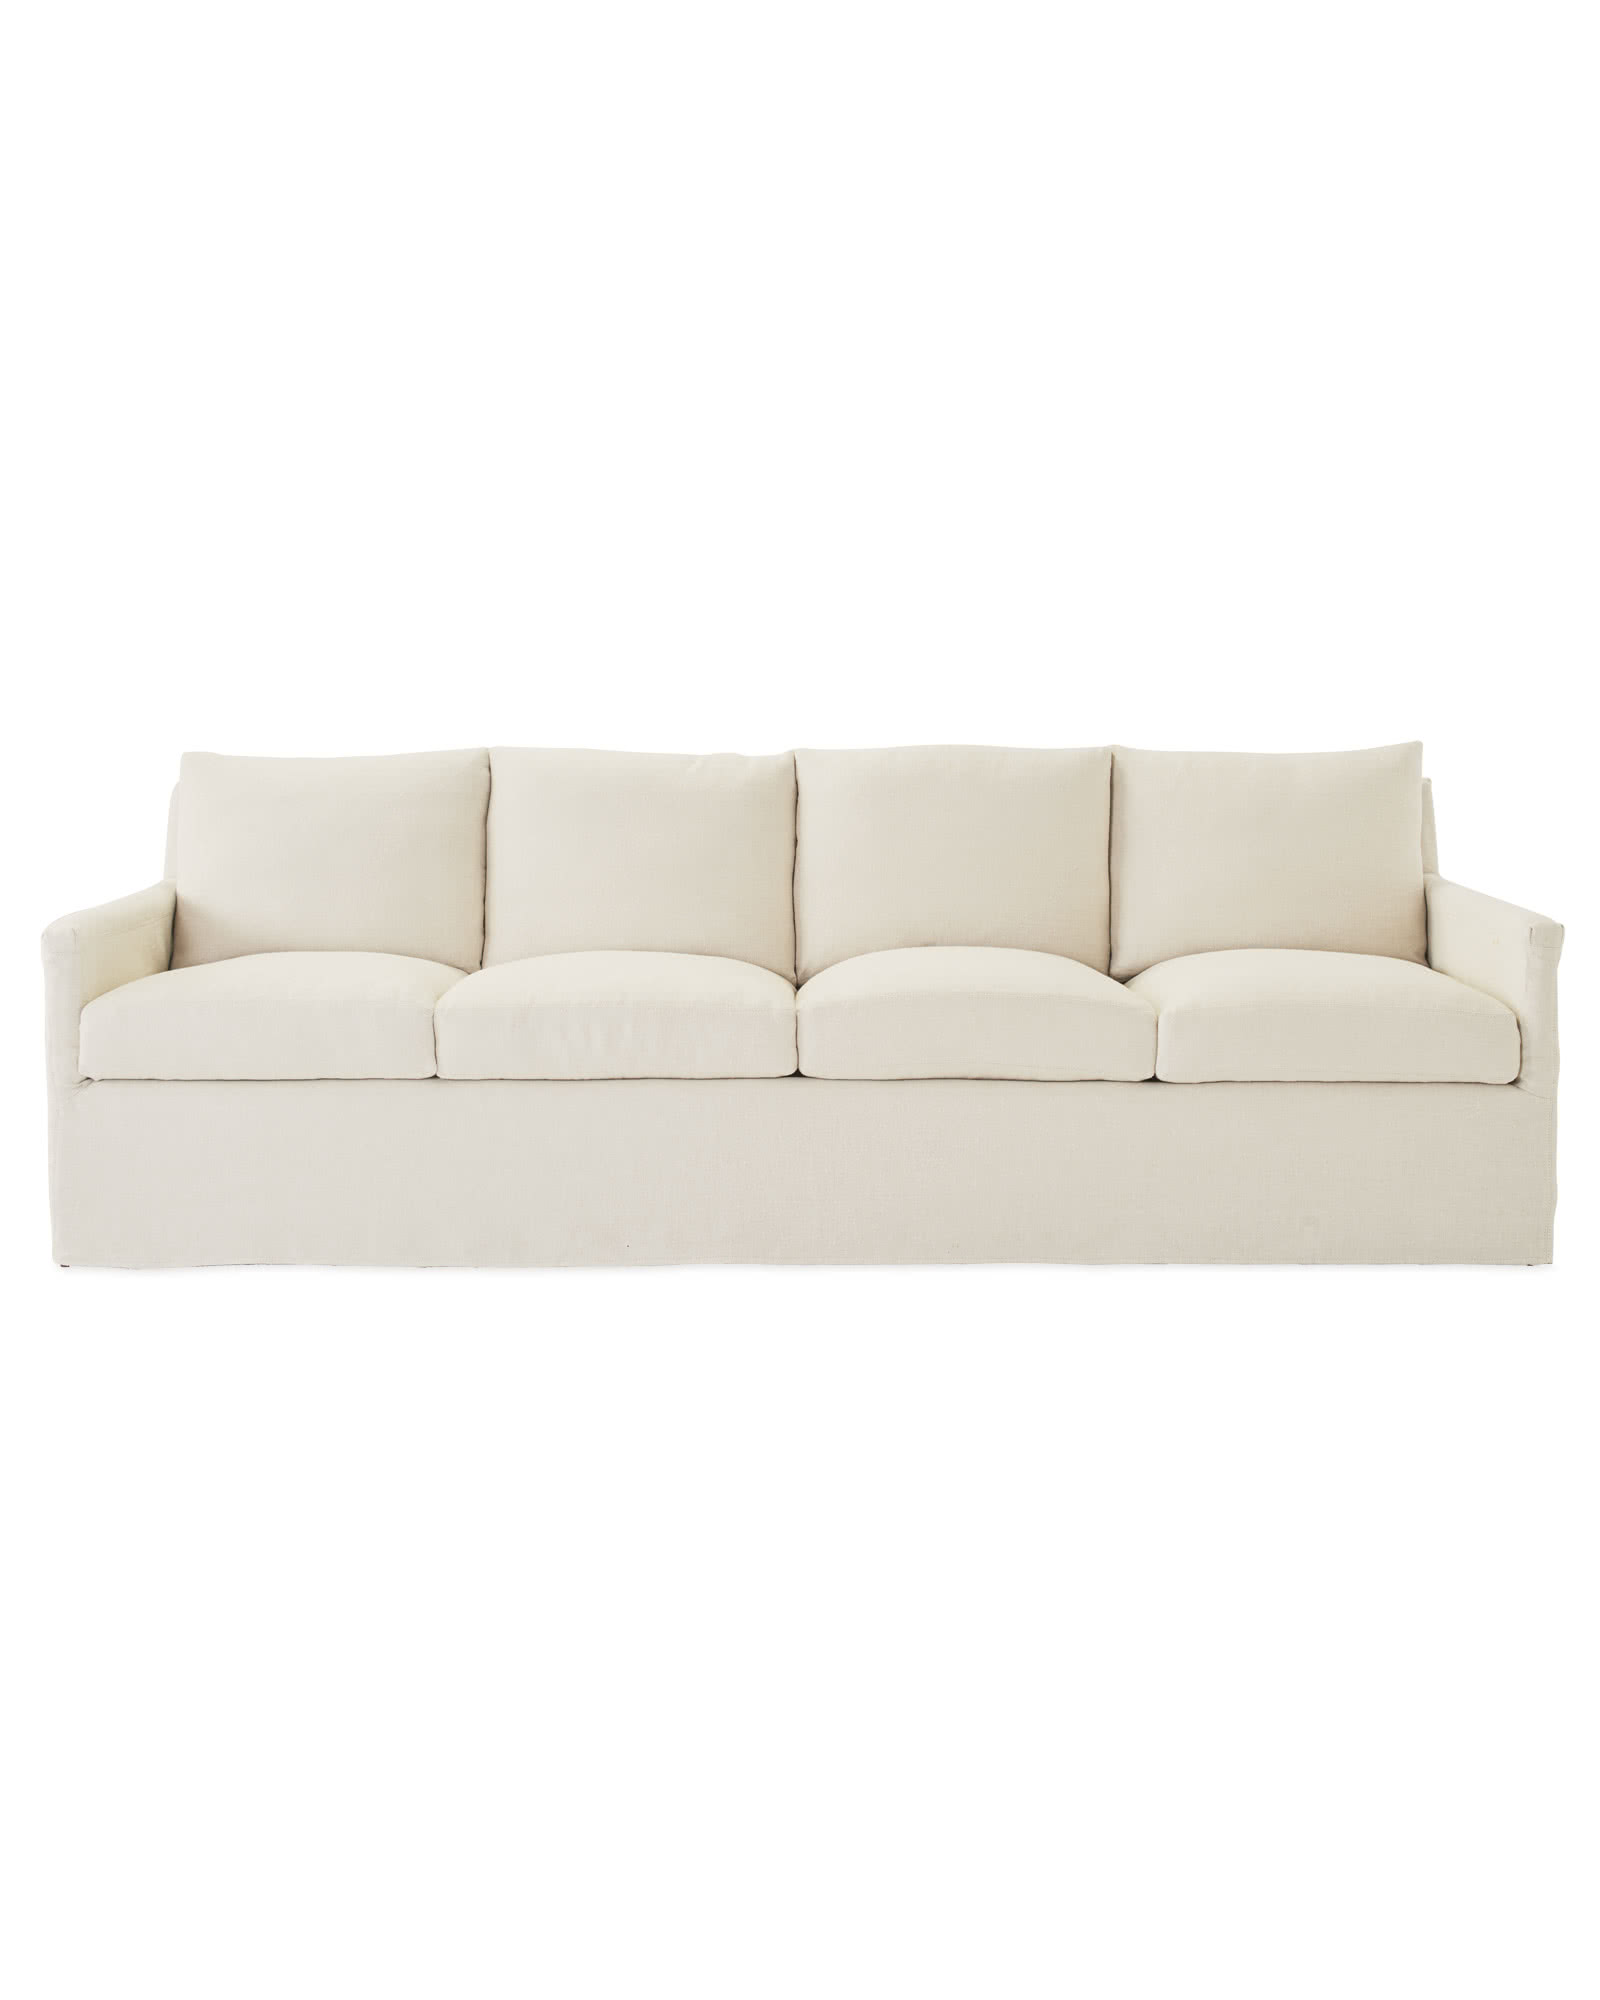 Spruce Street 4-Seat Sofa – Slipcovered